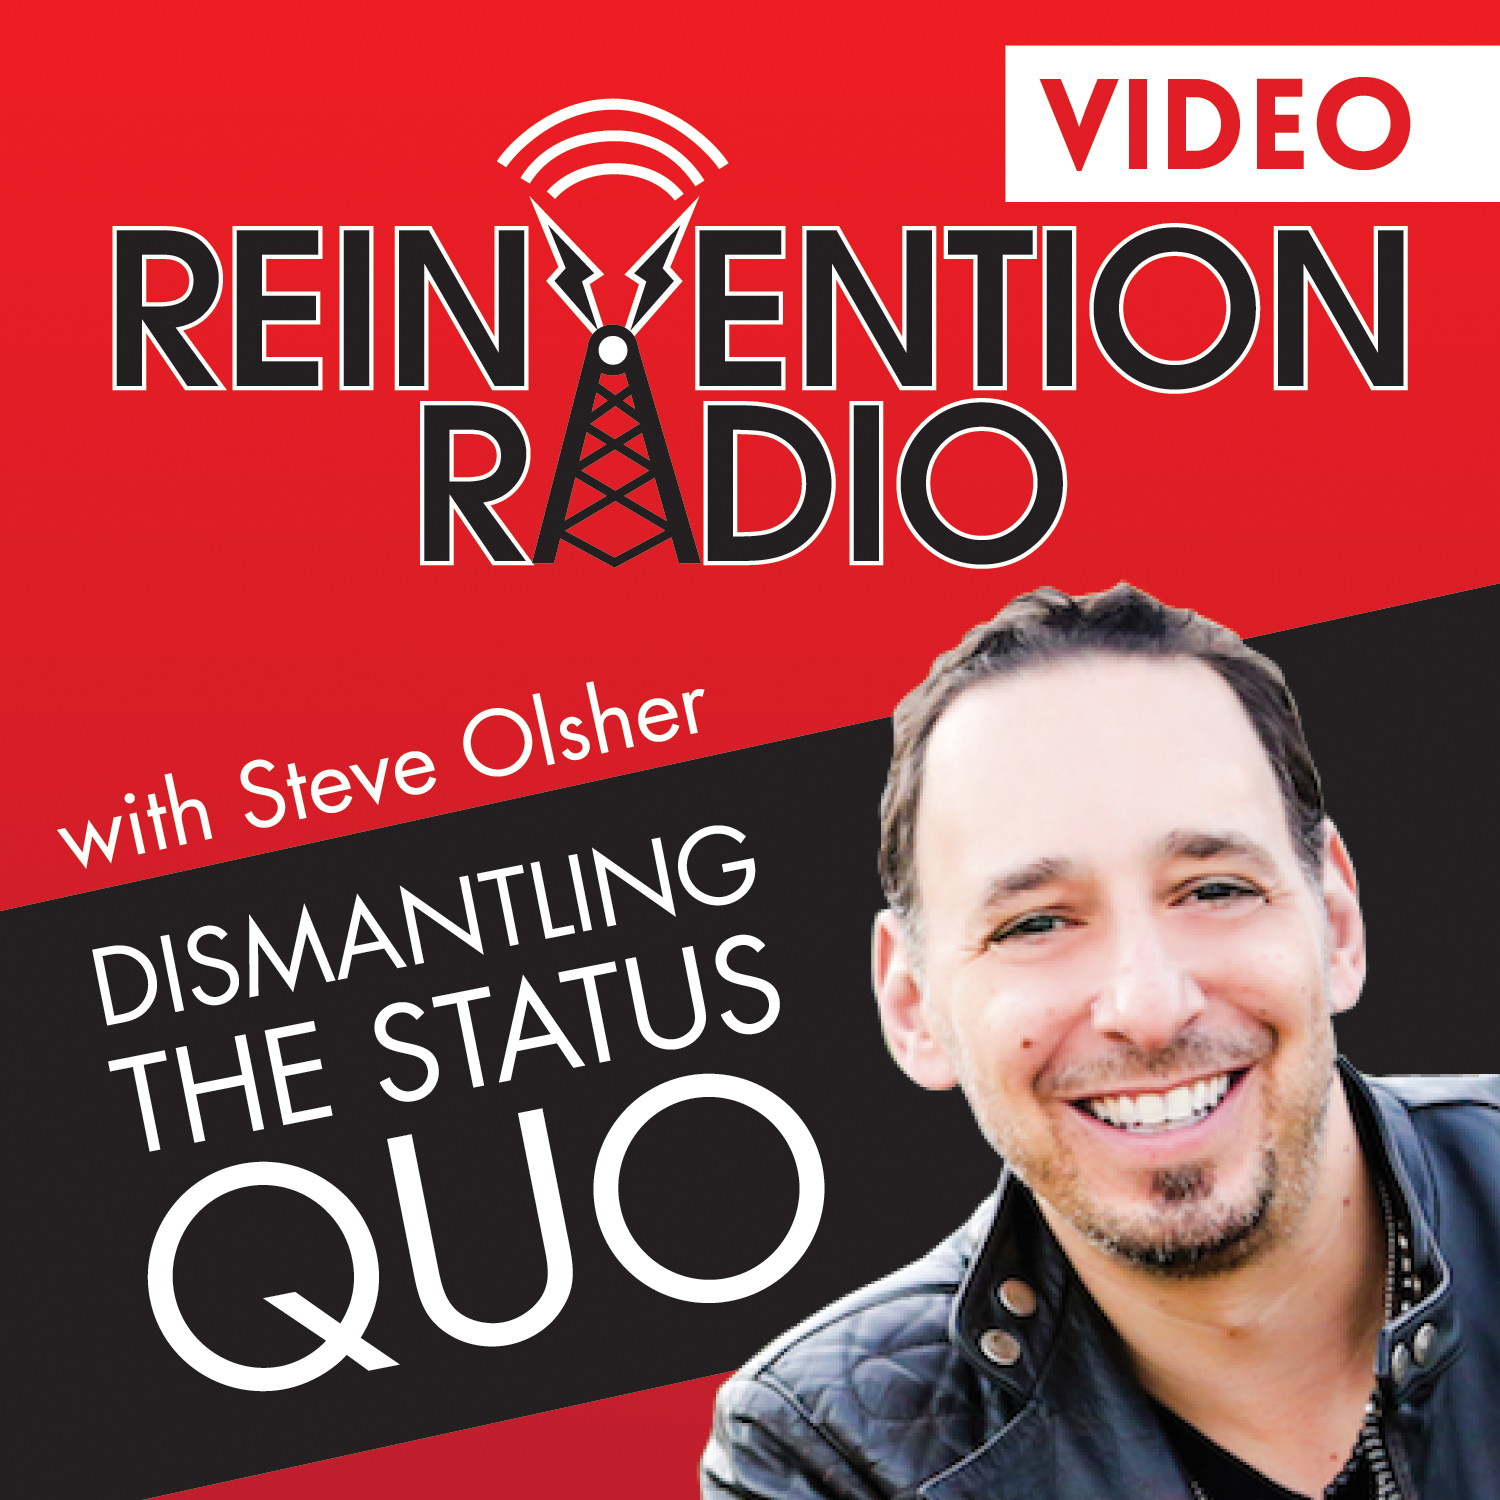 Reinvention Radio with Steve Olsher | Dismantling the Status Quo